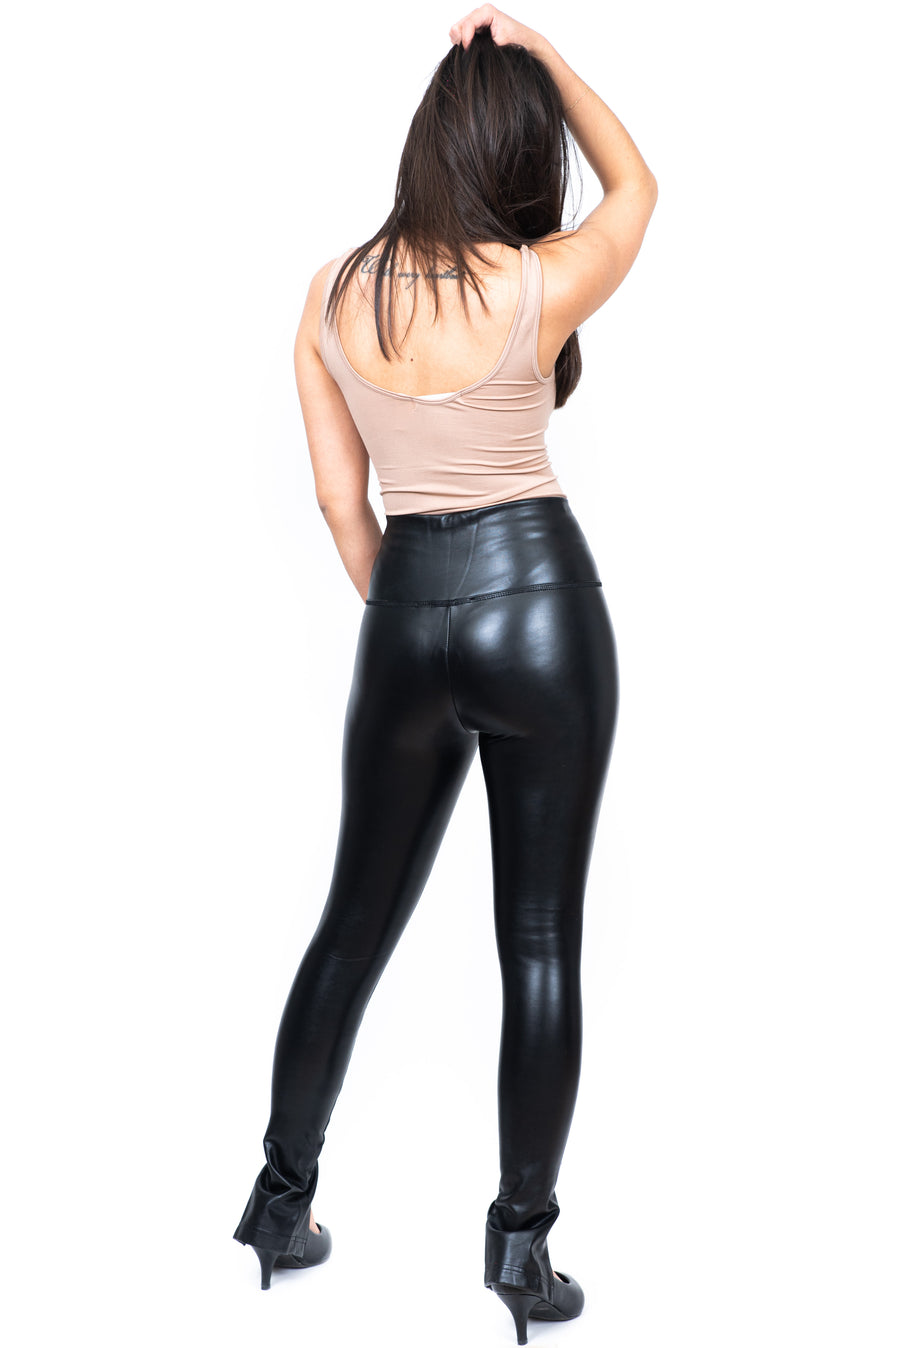 Le pantalon faux cuir fendu devant / Slit front faux leather pants